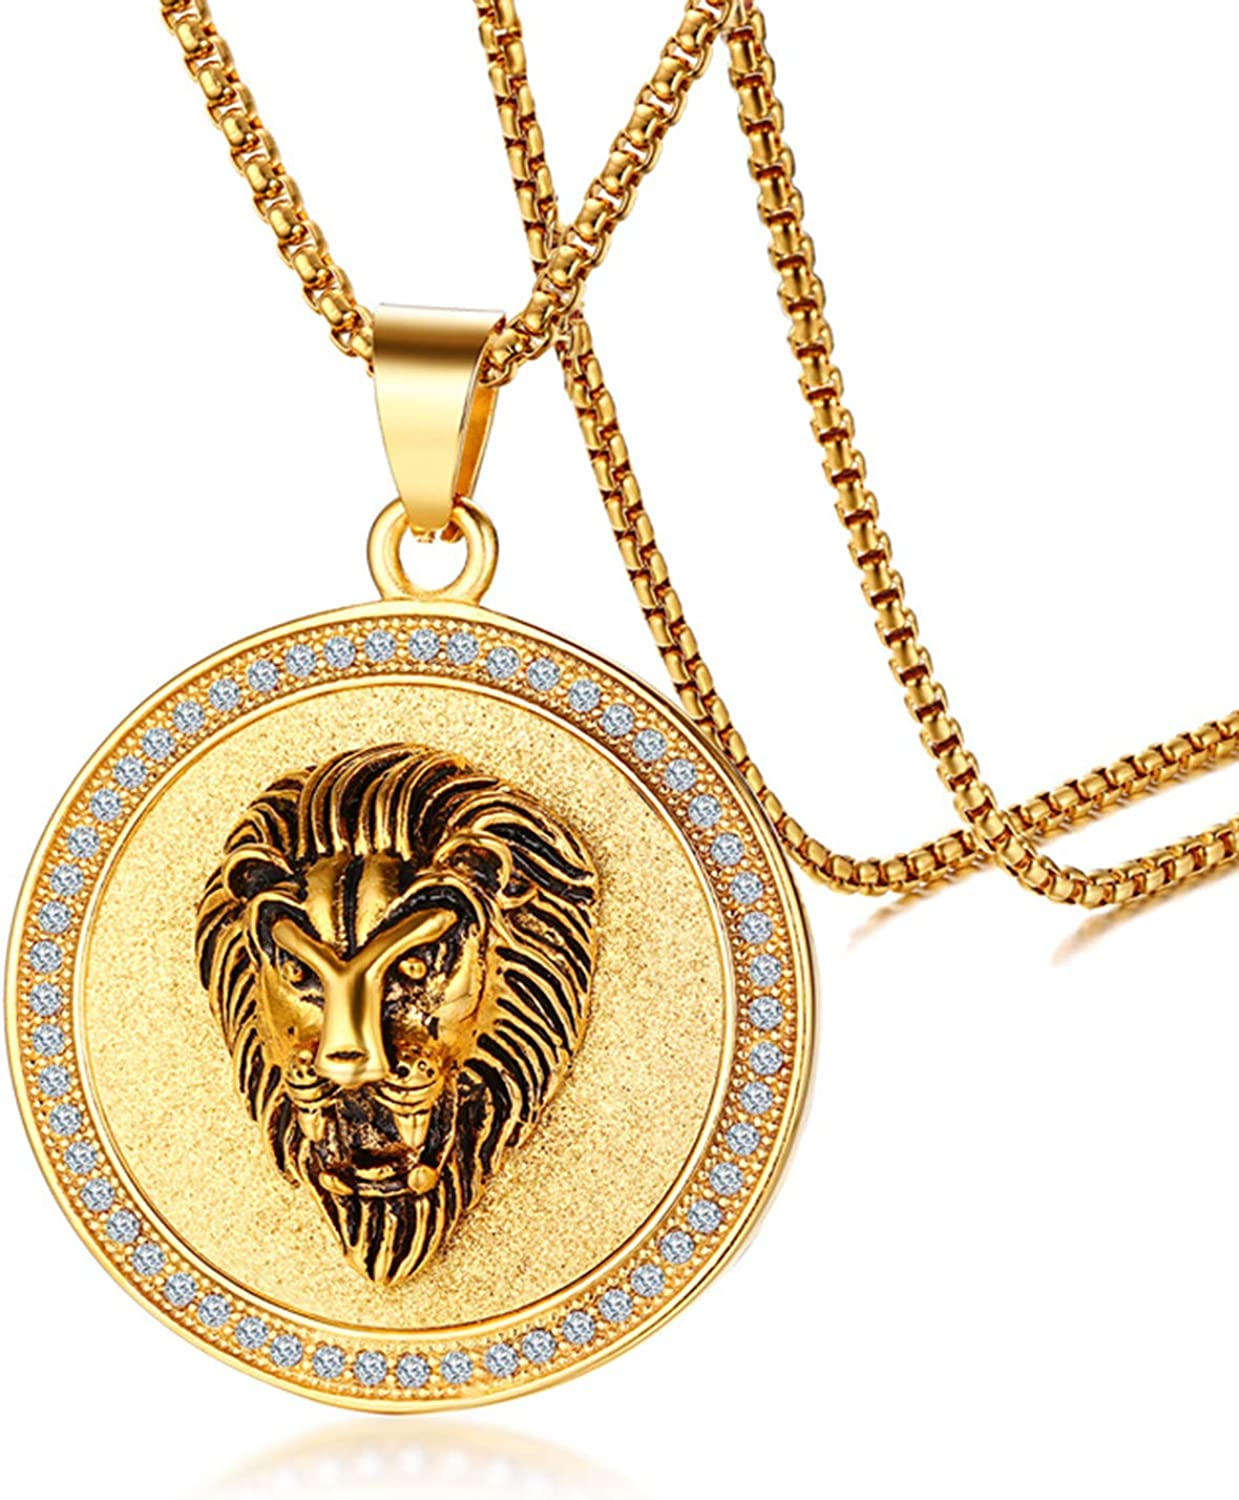 Cupimatch Gold Plated Circle of Rhinestone Crystal Lion Head Medallion Round Pendant Necklace Chain, Mens Stainless Steel Gothic 24